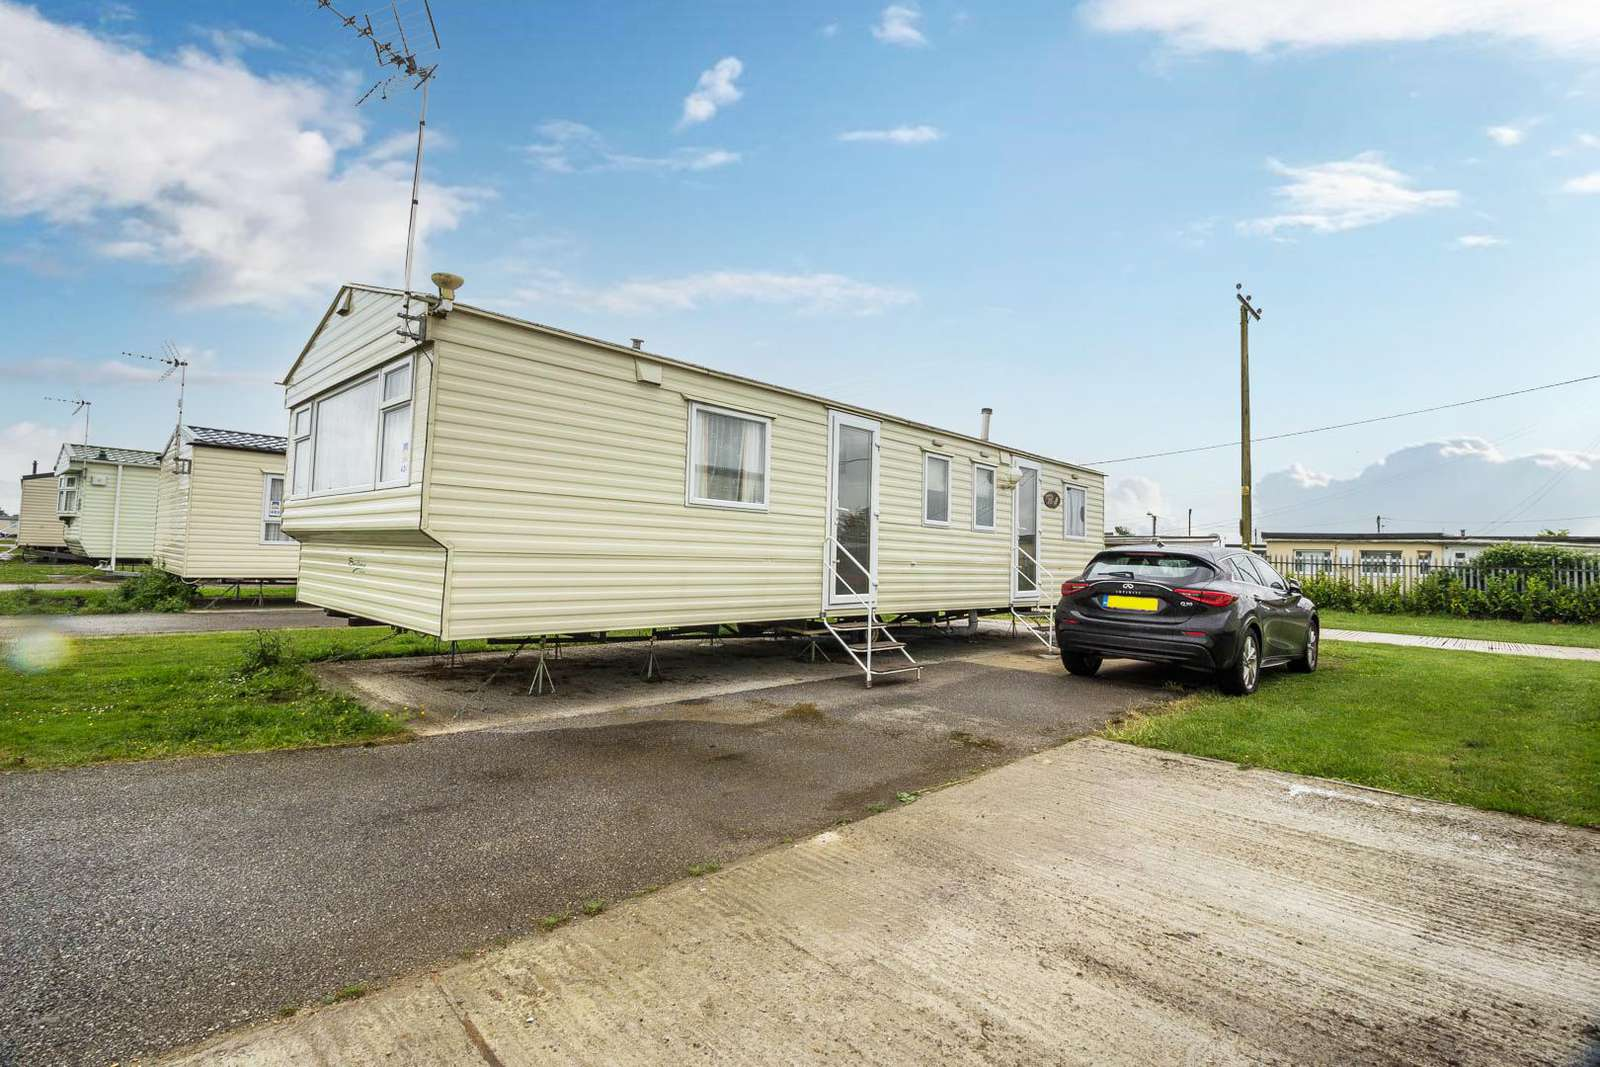 27424S – Seawick, 3 bed, 8 berth caravan with free unlimited WiFi. Emerald rated. - property